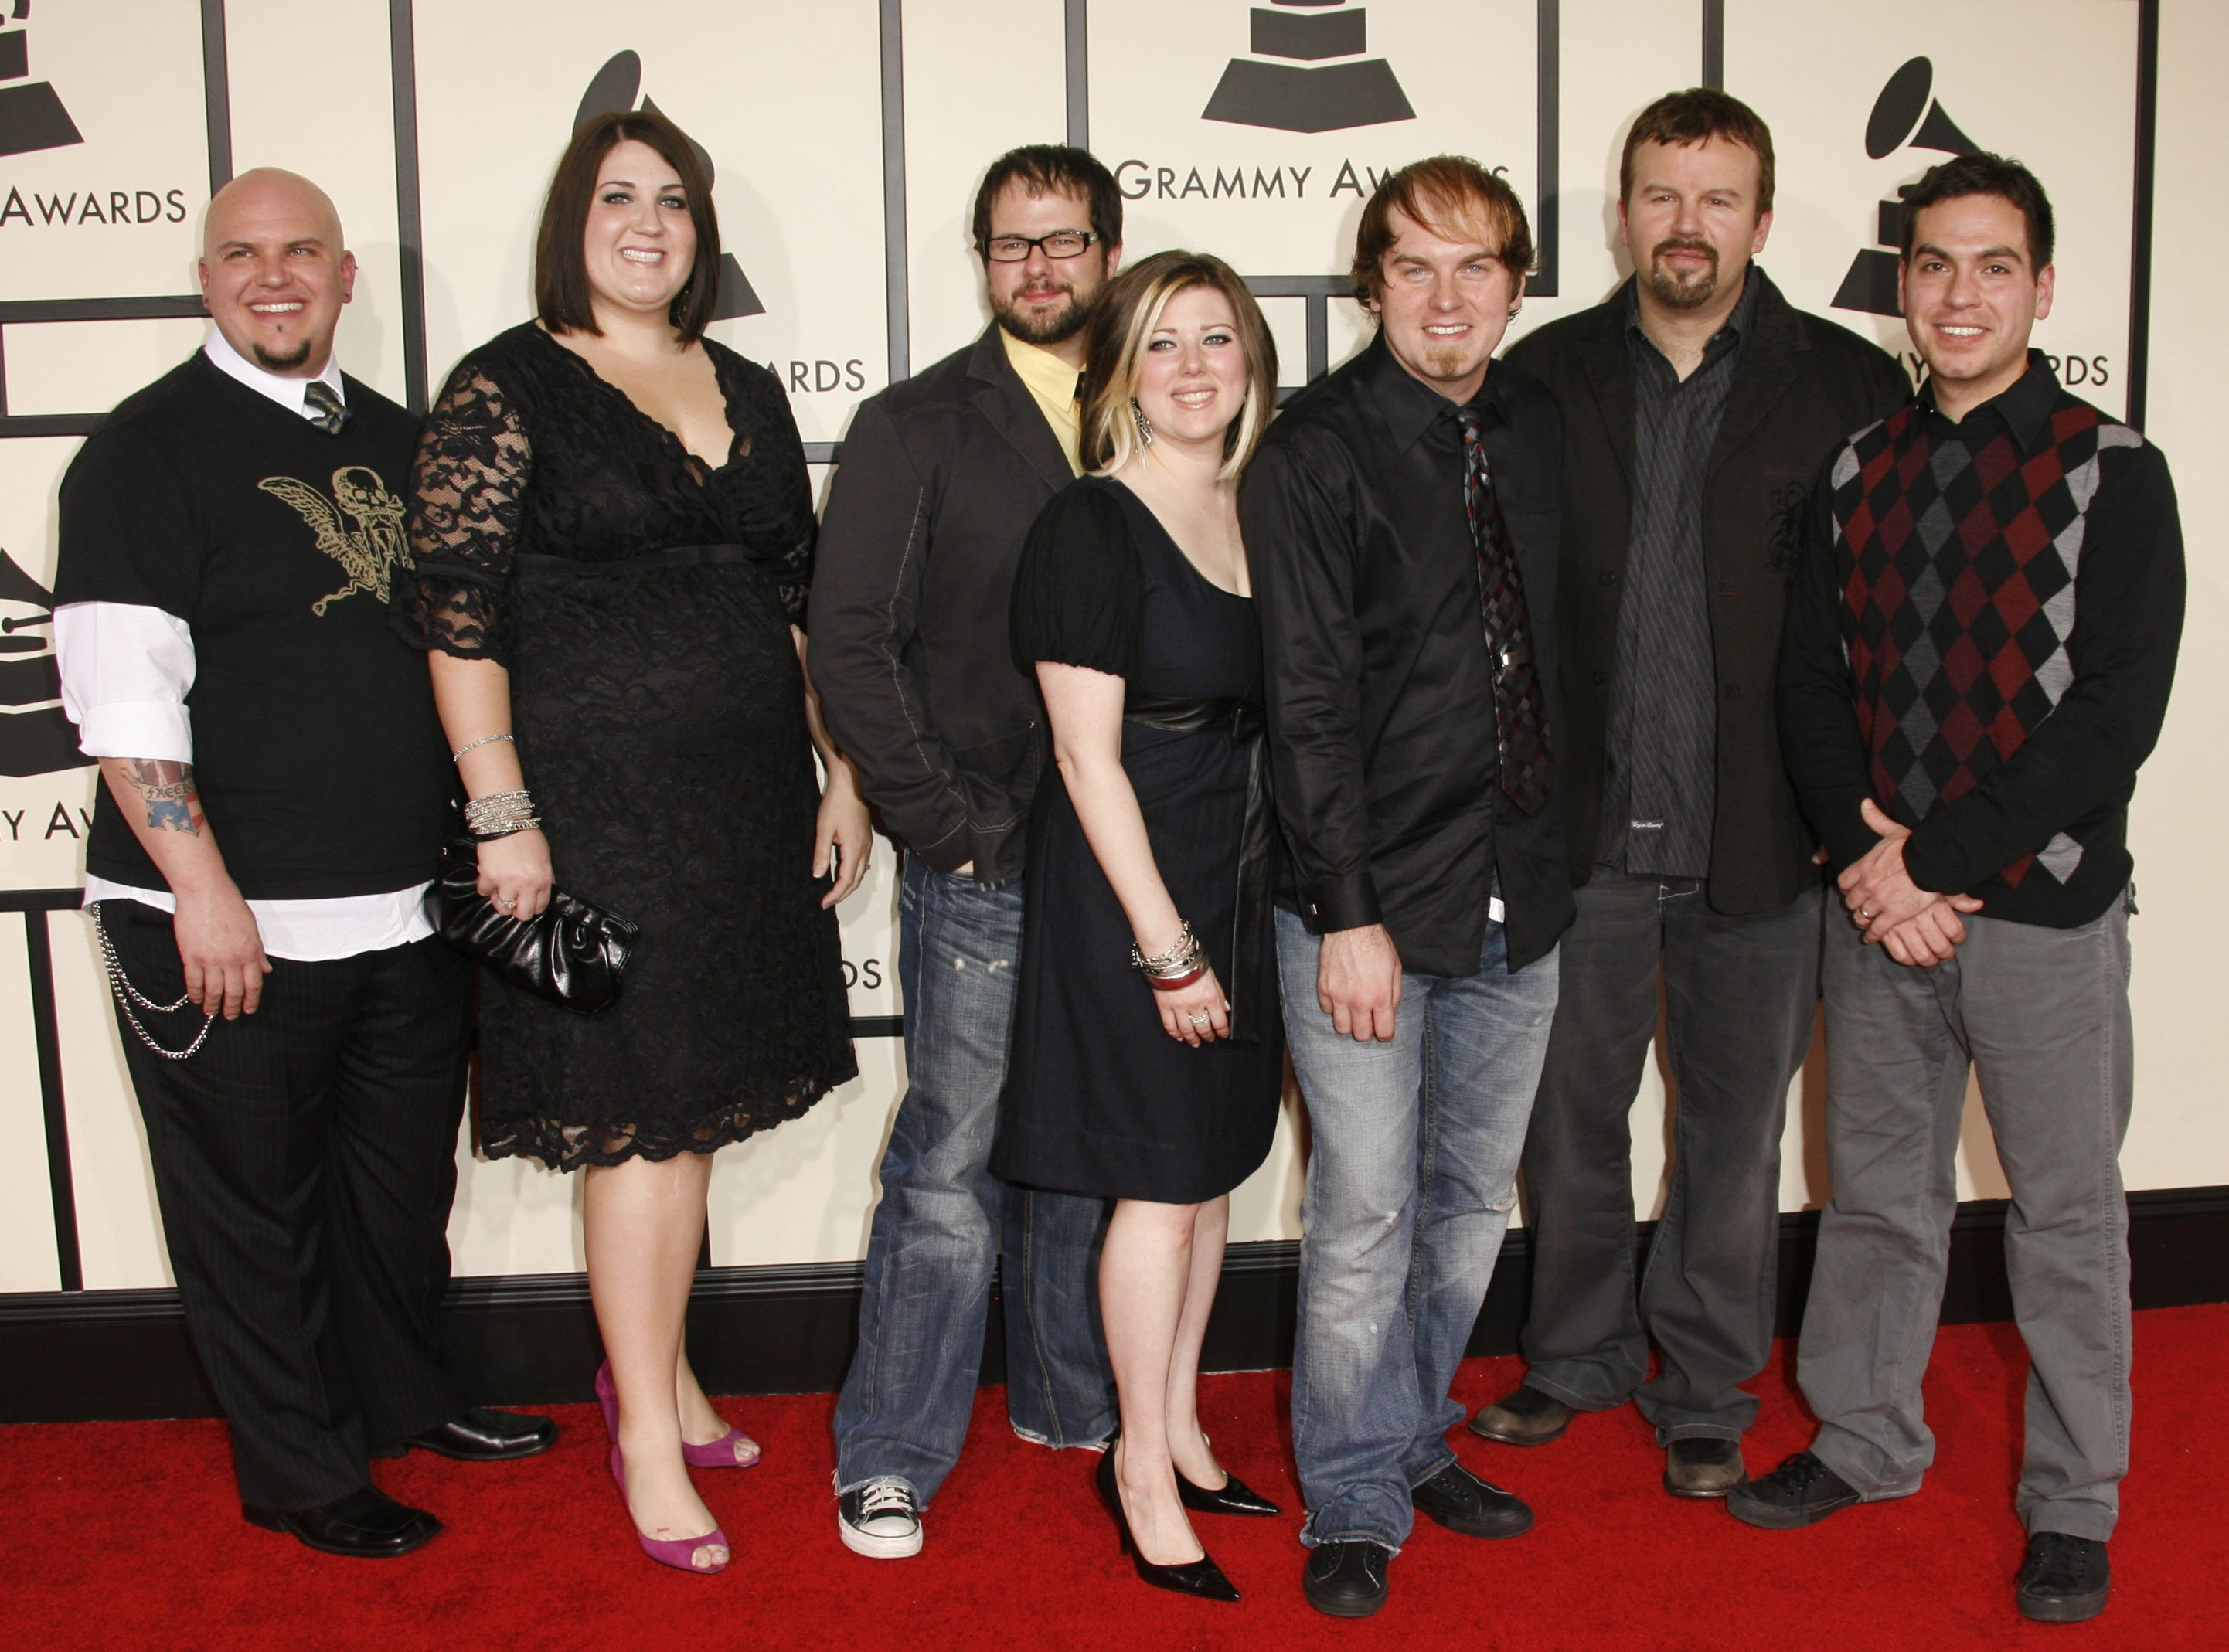 2/10/08 1:42:10 PM -- Los Angeles, CA, U.S.A_ -- The 50th Annual Grammy Awards show at the STAPLES Center in Los Angeles. -- _Casting Crowns arrive at The 50th Annual Grammy Awards at the Staples Center in Los Angeles, CA.__Photo by Dan MacMedan, USA TODAY contract photographer